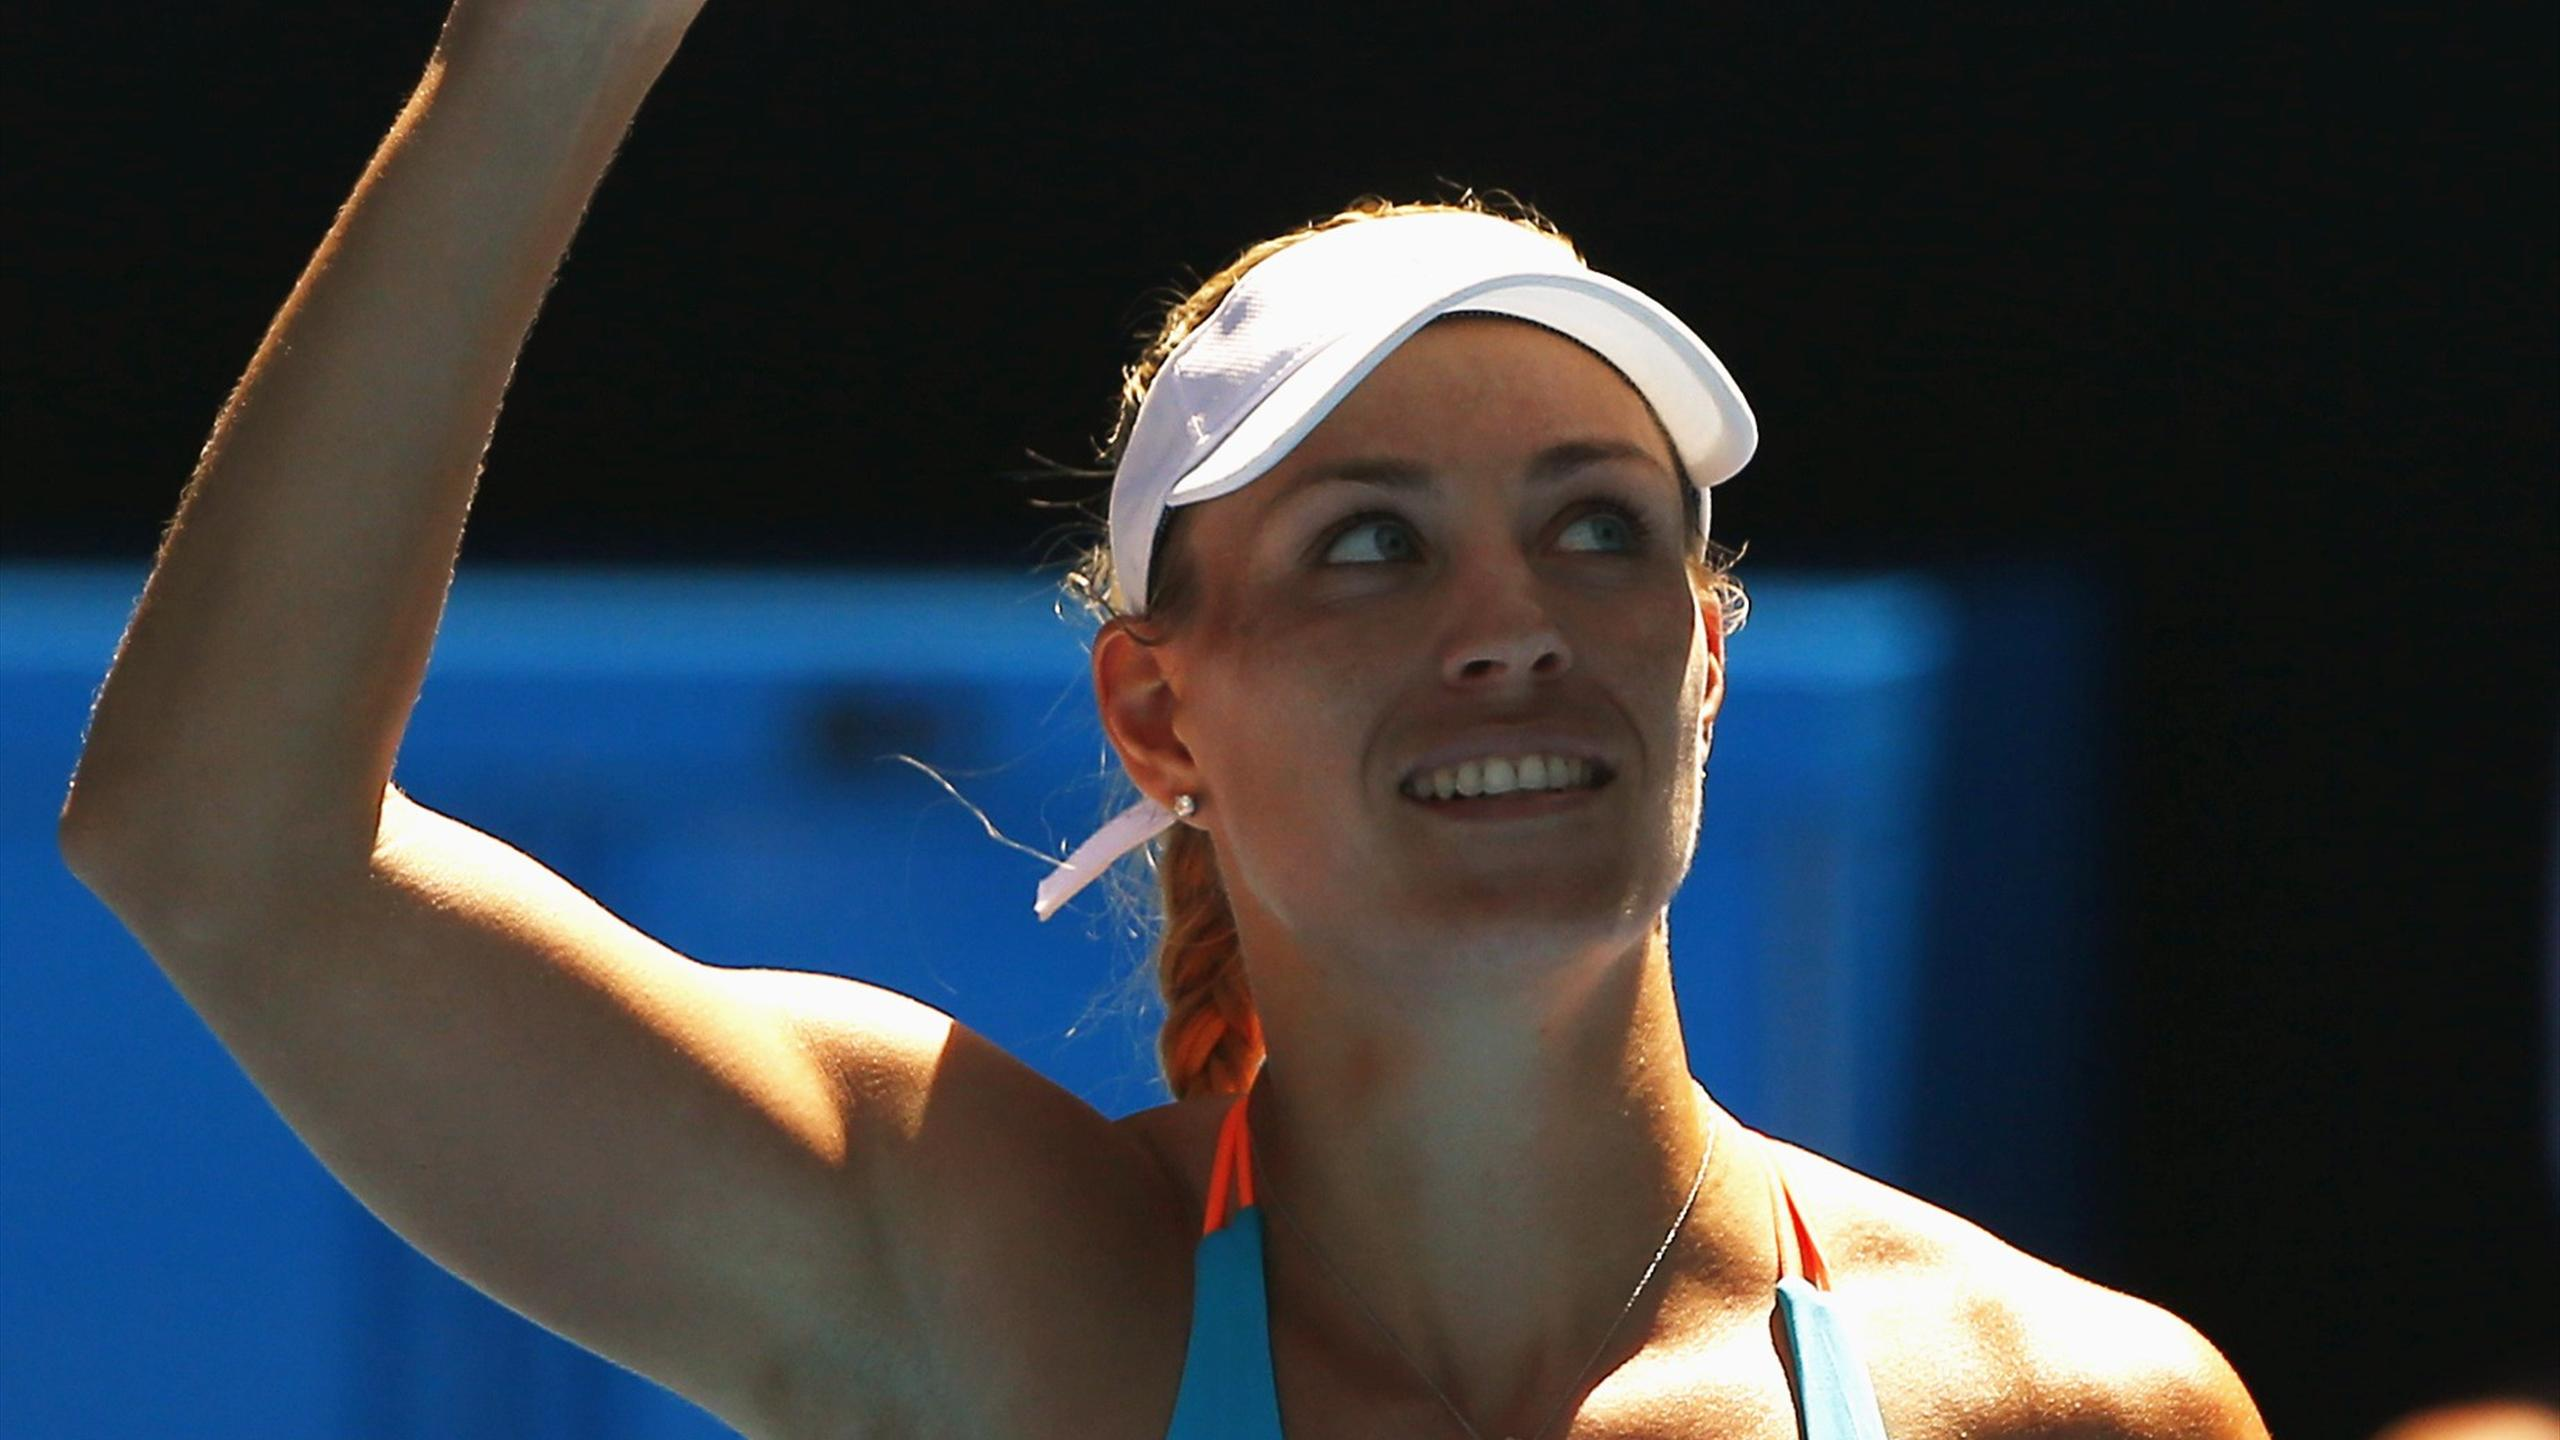 Germany's Angelique Kerber's celebrates after winning her Women's singles second round match against Germany's Carina Witthoeft